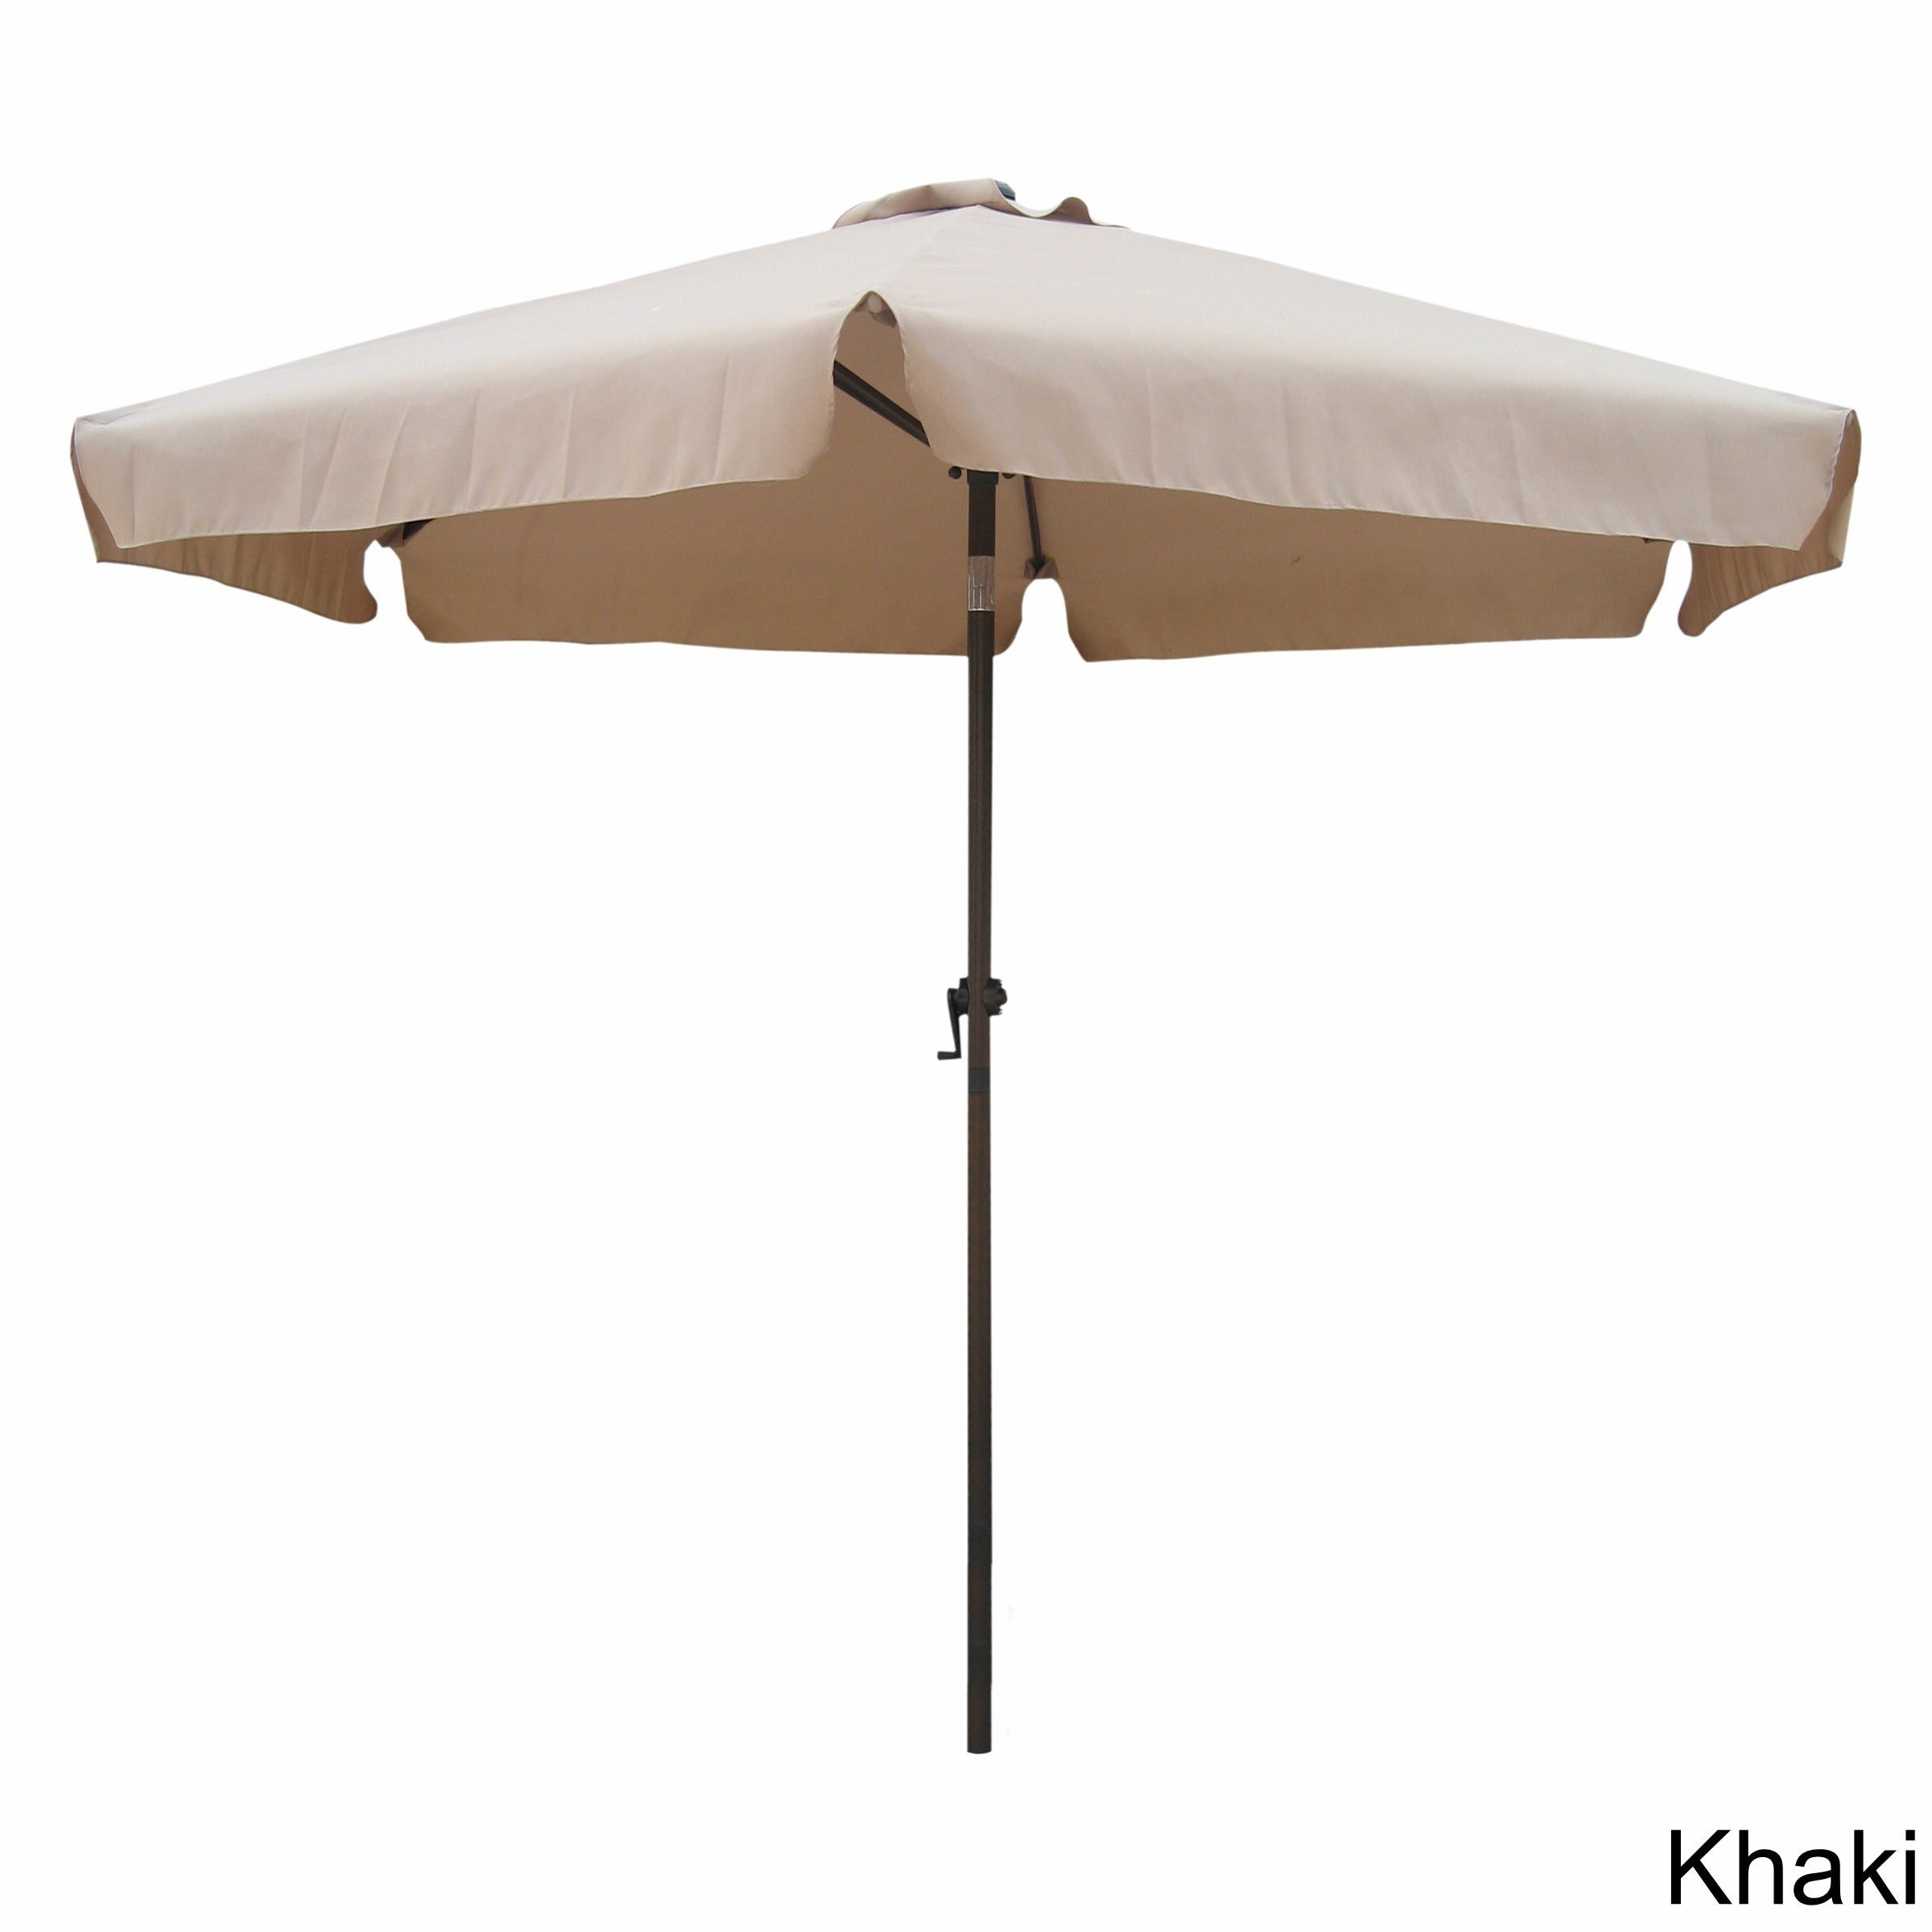 range and cafe star diva outdoor garden product branding umbrella umbrellas caf promotion